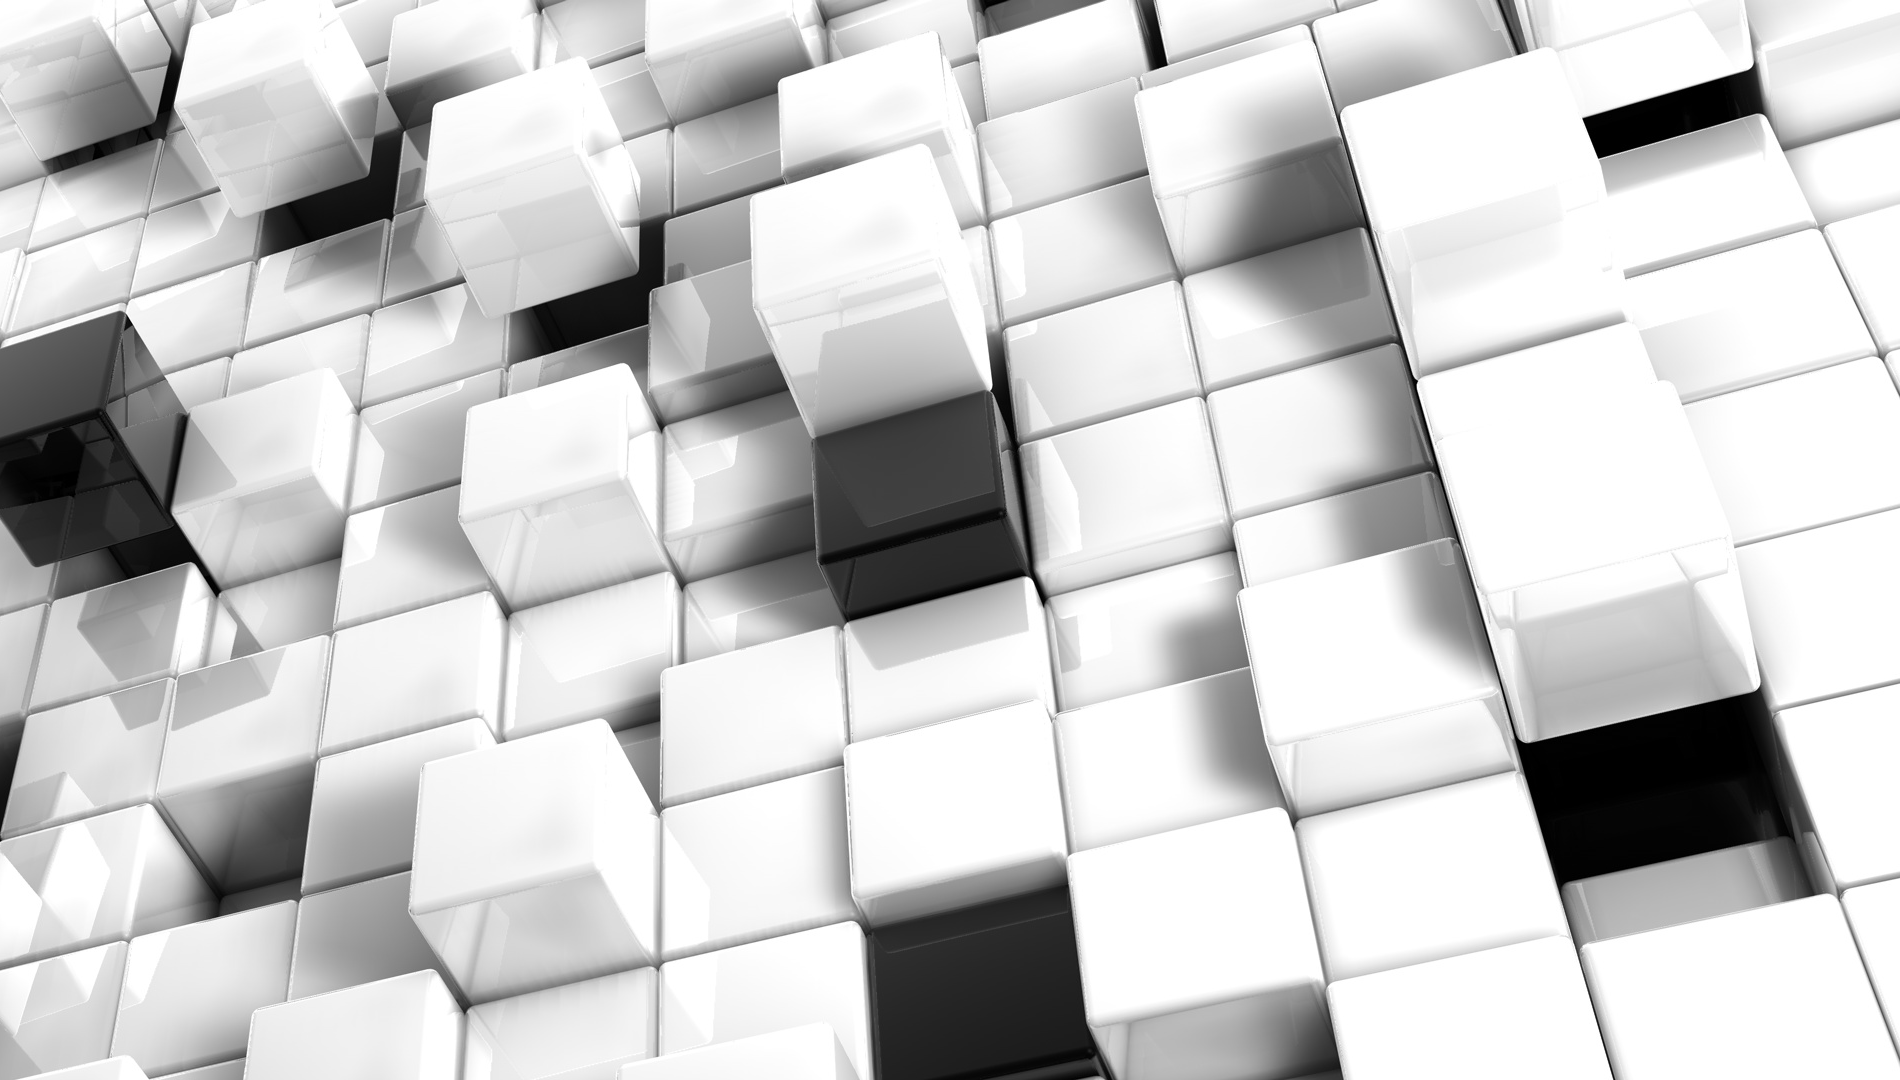 Cubes Abstract Wallpapers ID: RSV7575